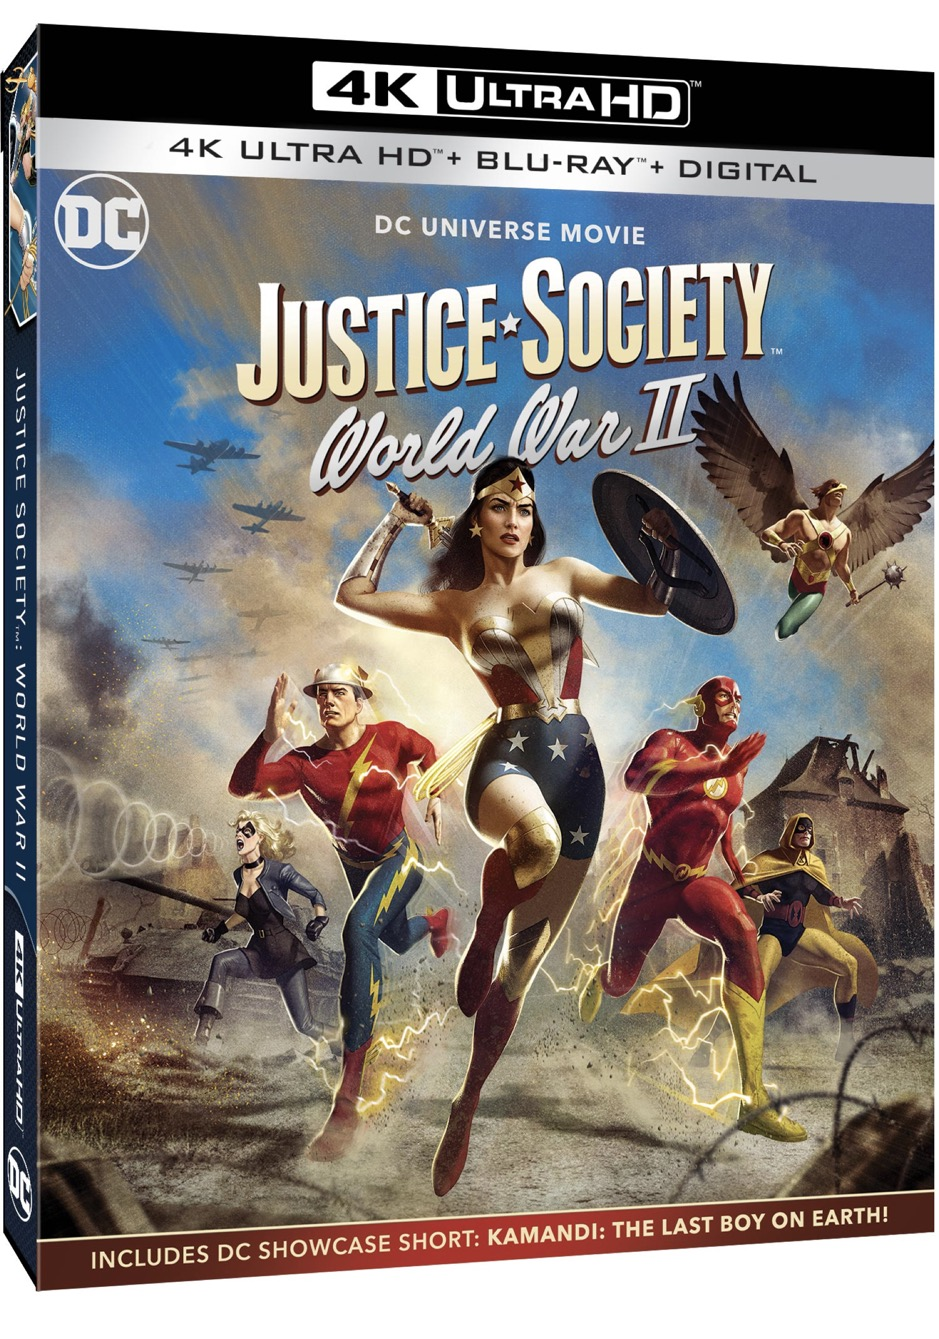 JusticeSociety WWII 1000783440 4K OSLV 3D TEMP DOM SKEW